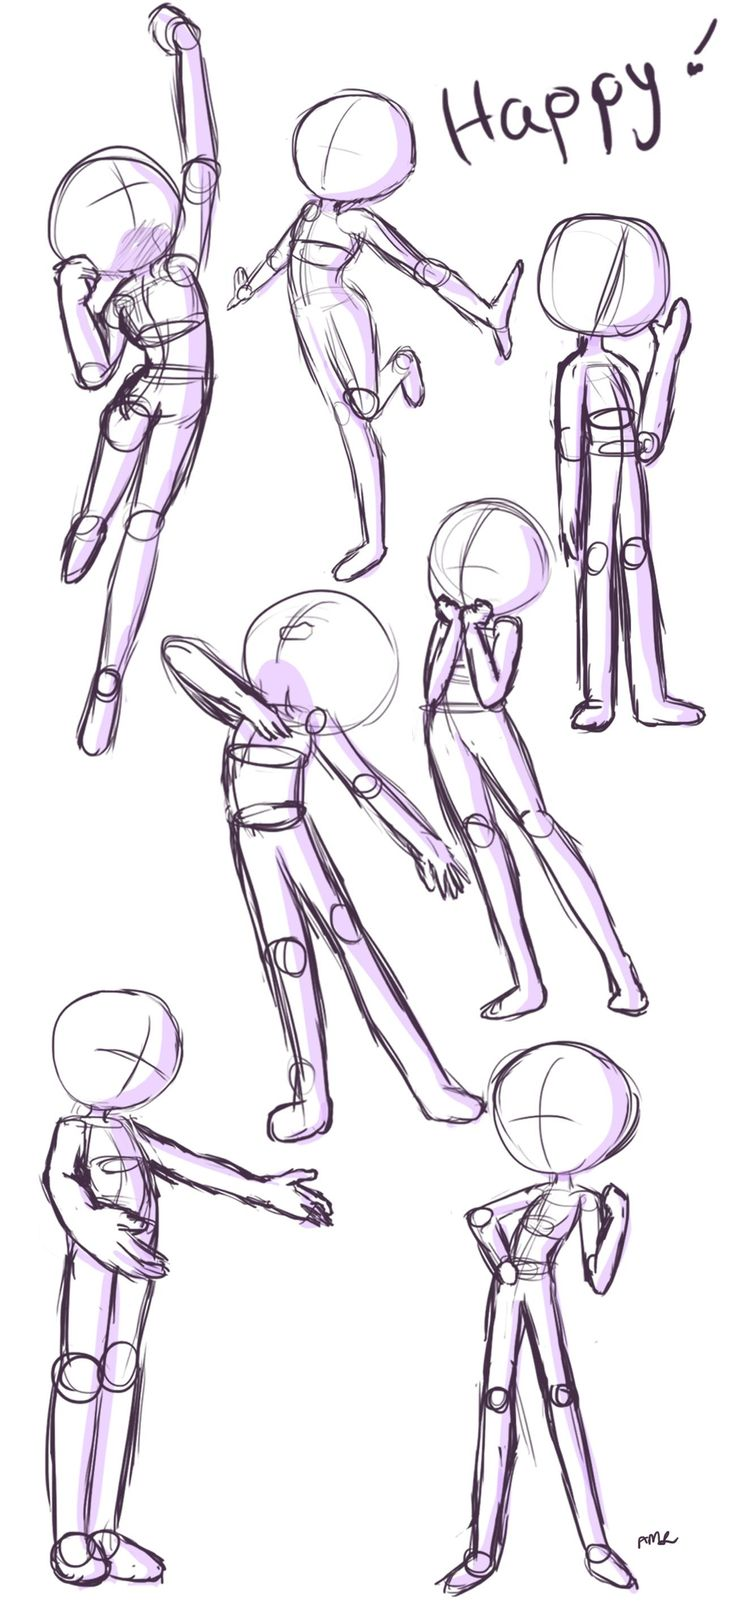 Quick reference page for happy/friendly standing poses! For more poses and explanations, visit the video linked to this pin!